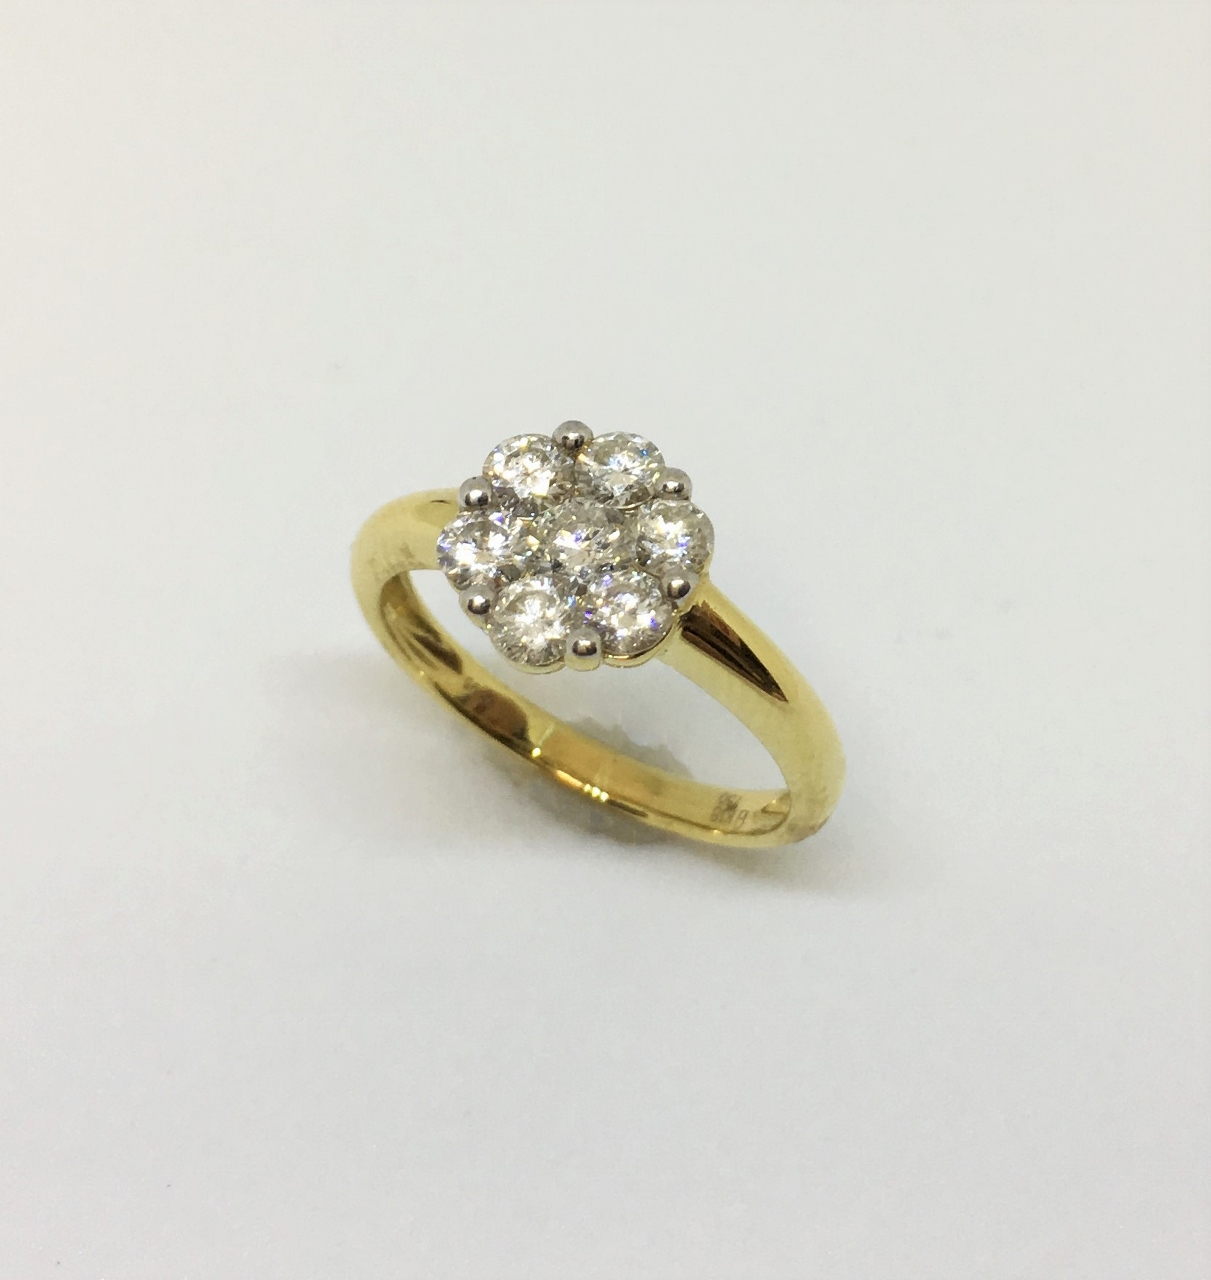 Almost 1 Carat 18K Yellow Gold Cluster Diamond Ring